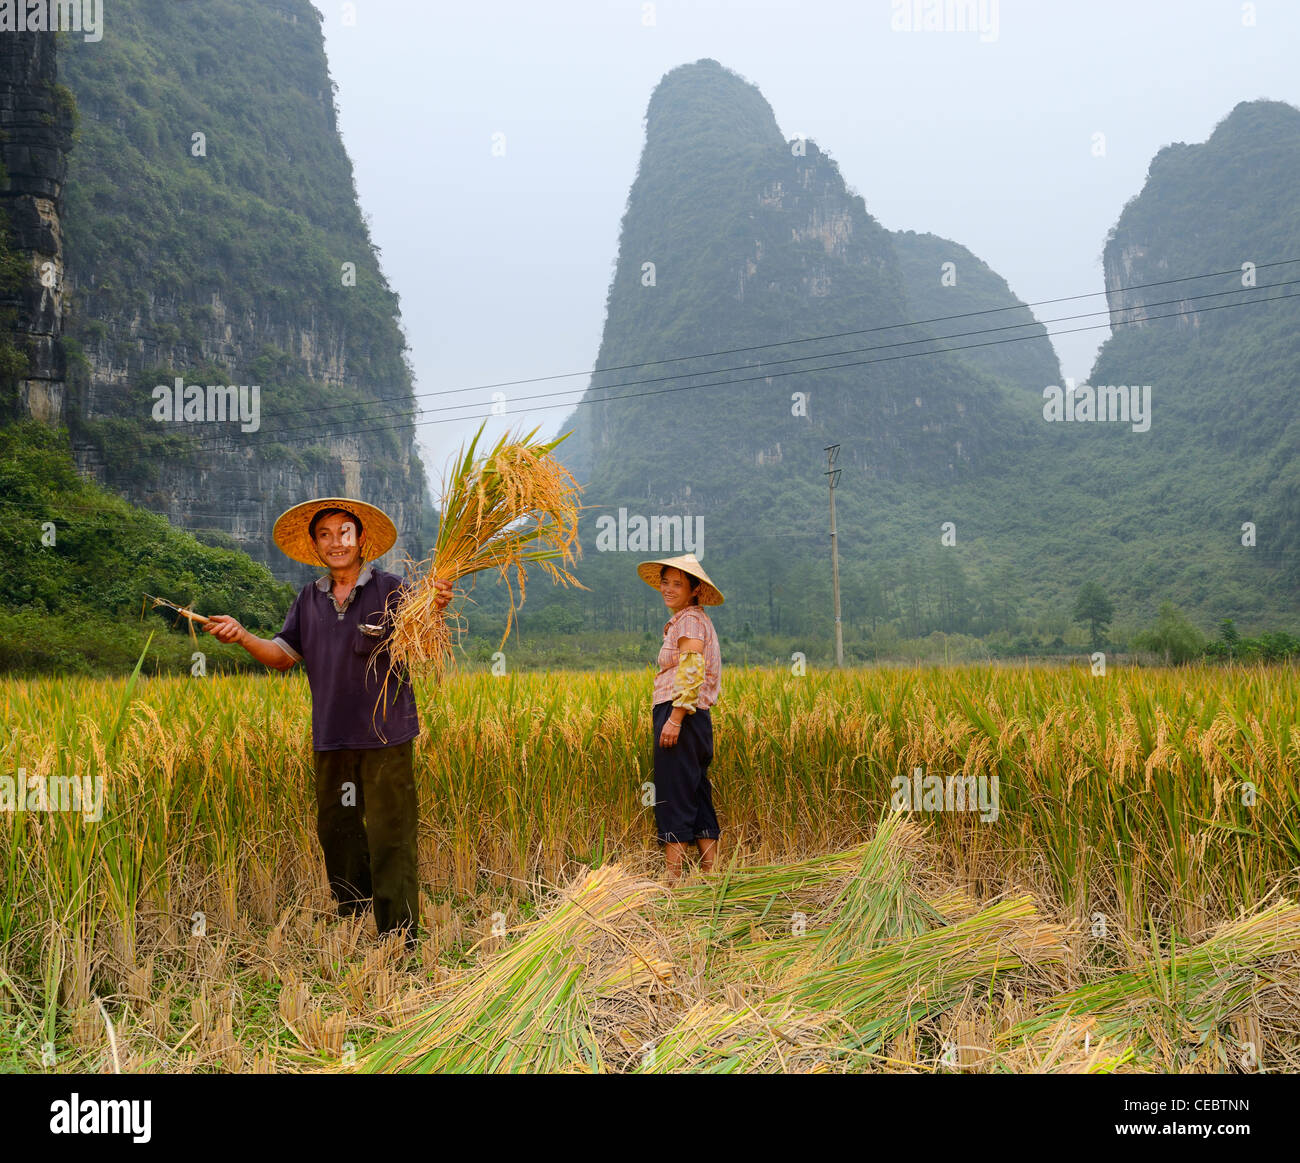 Farmer in field showing hand sickle and bundle of rice stalk crops with pointed Karst limestone peaks near Yangshuo - Stock Image